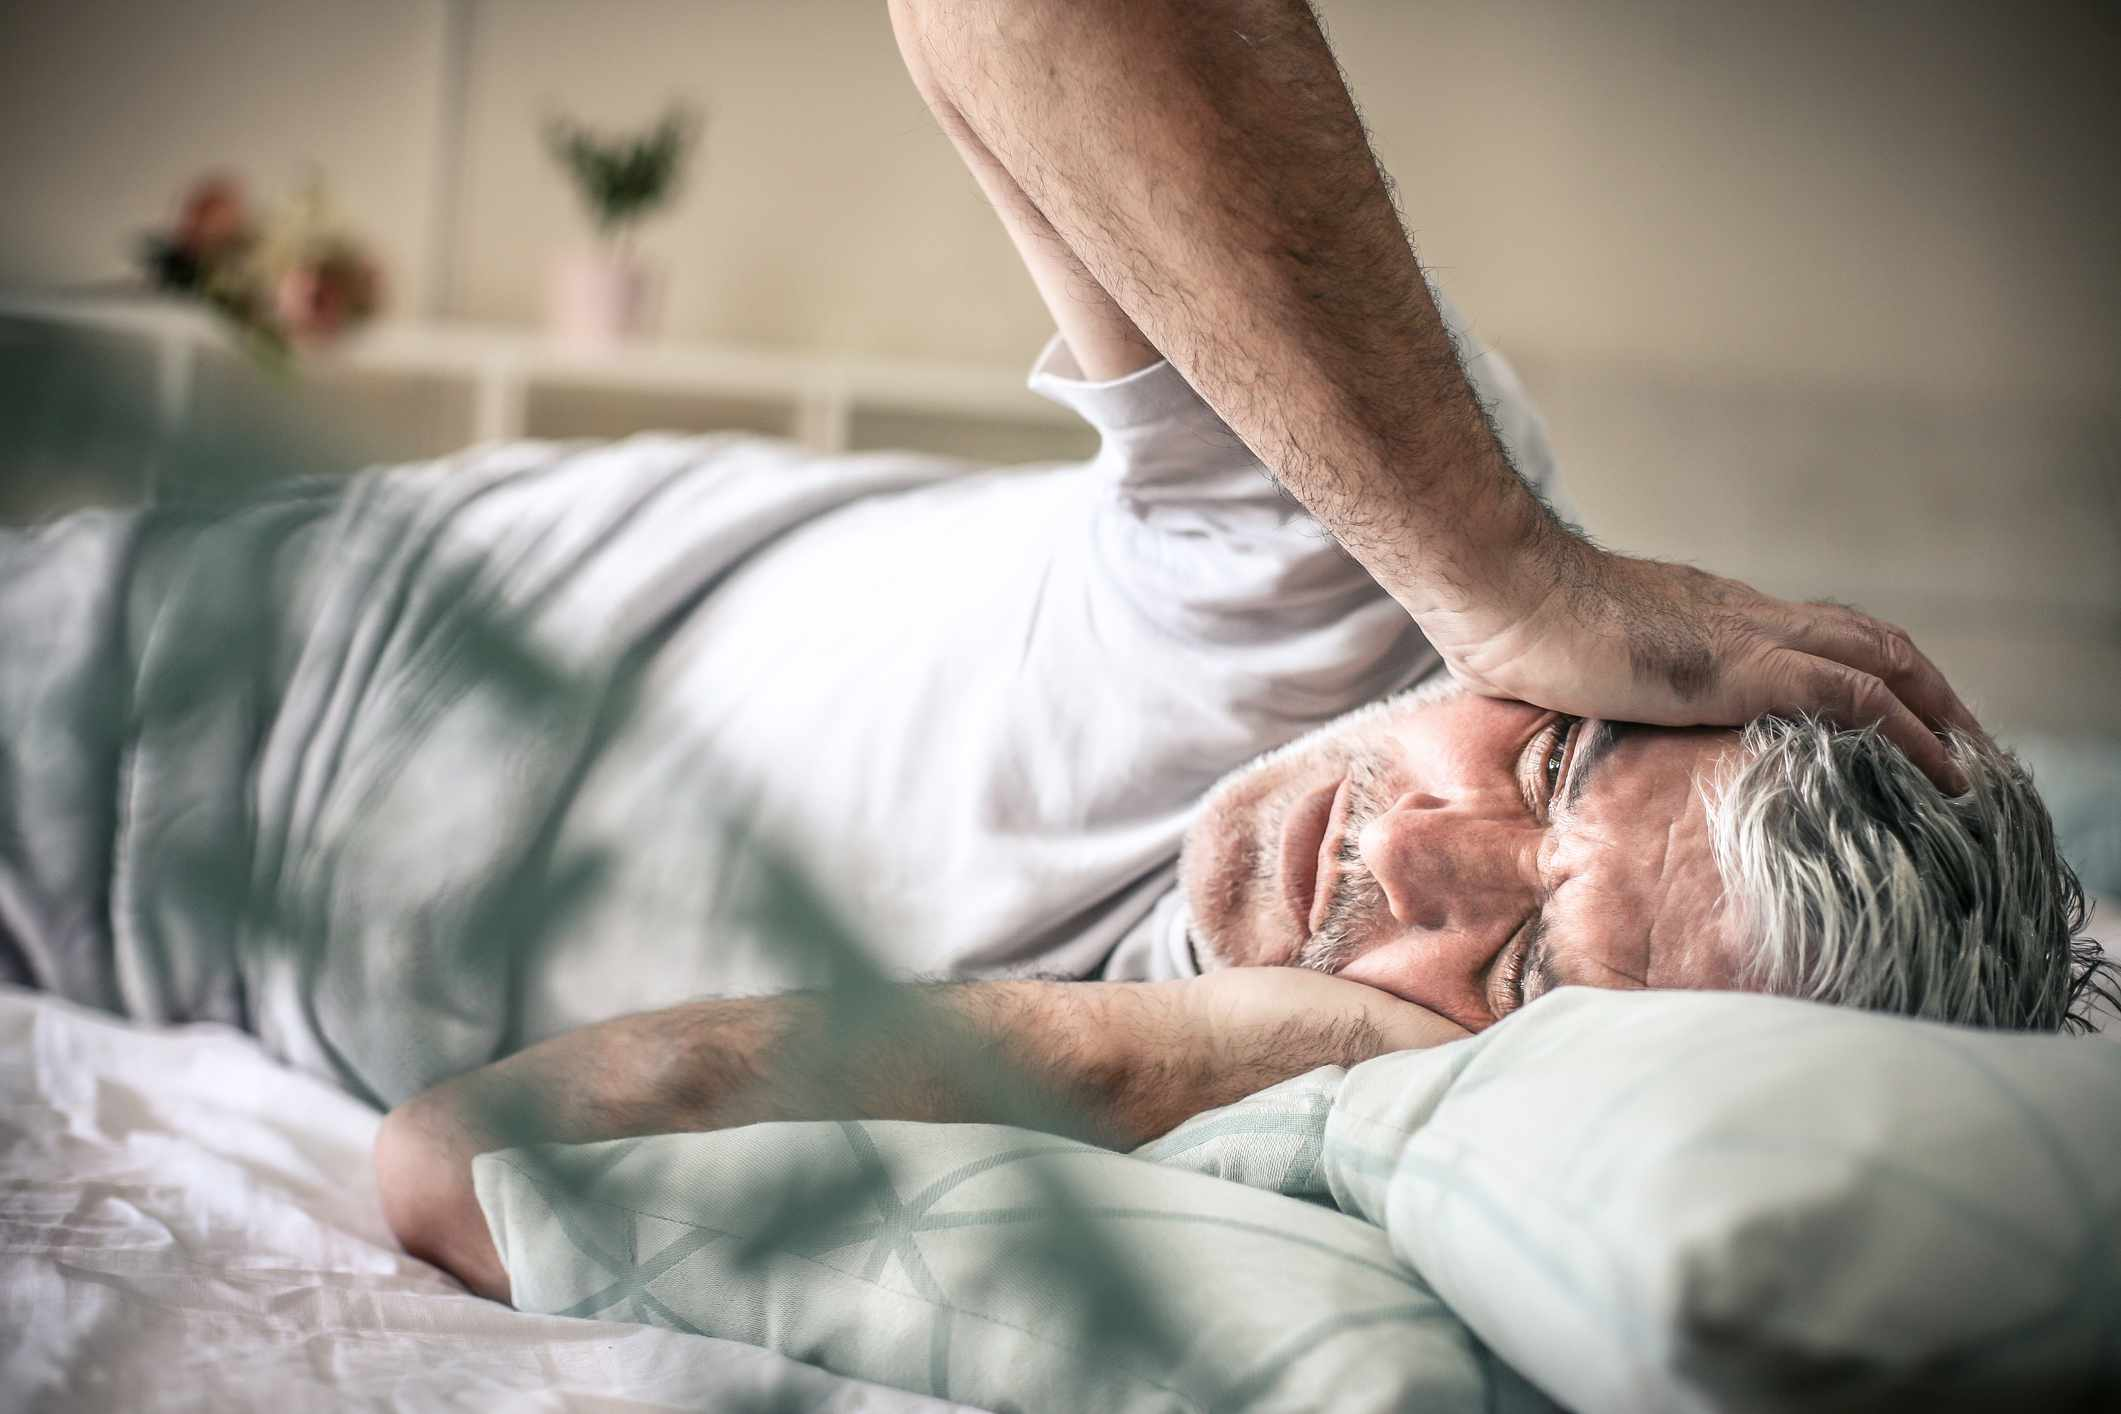 A man laying in bed with severe head pain